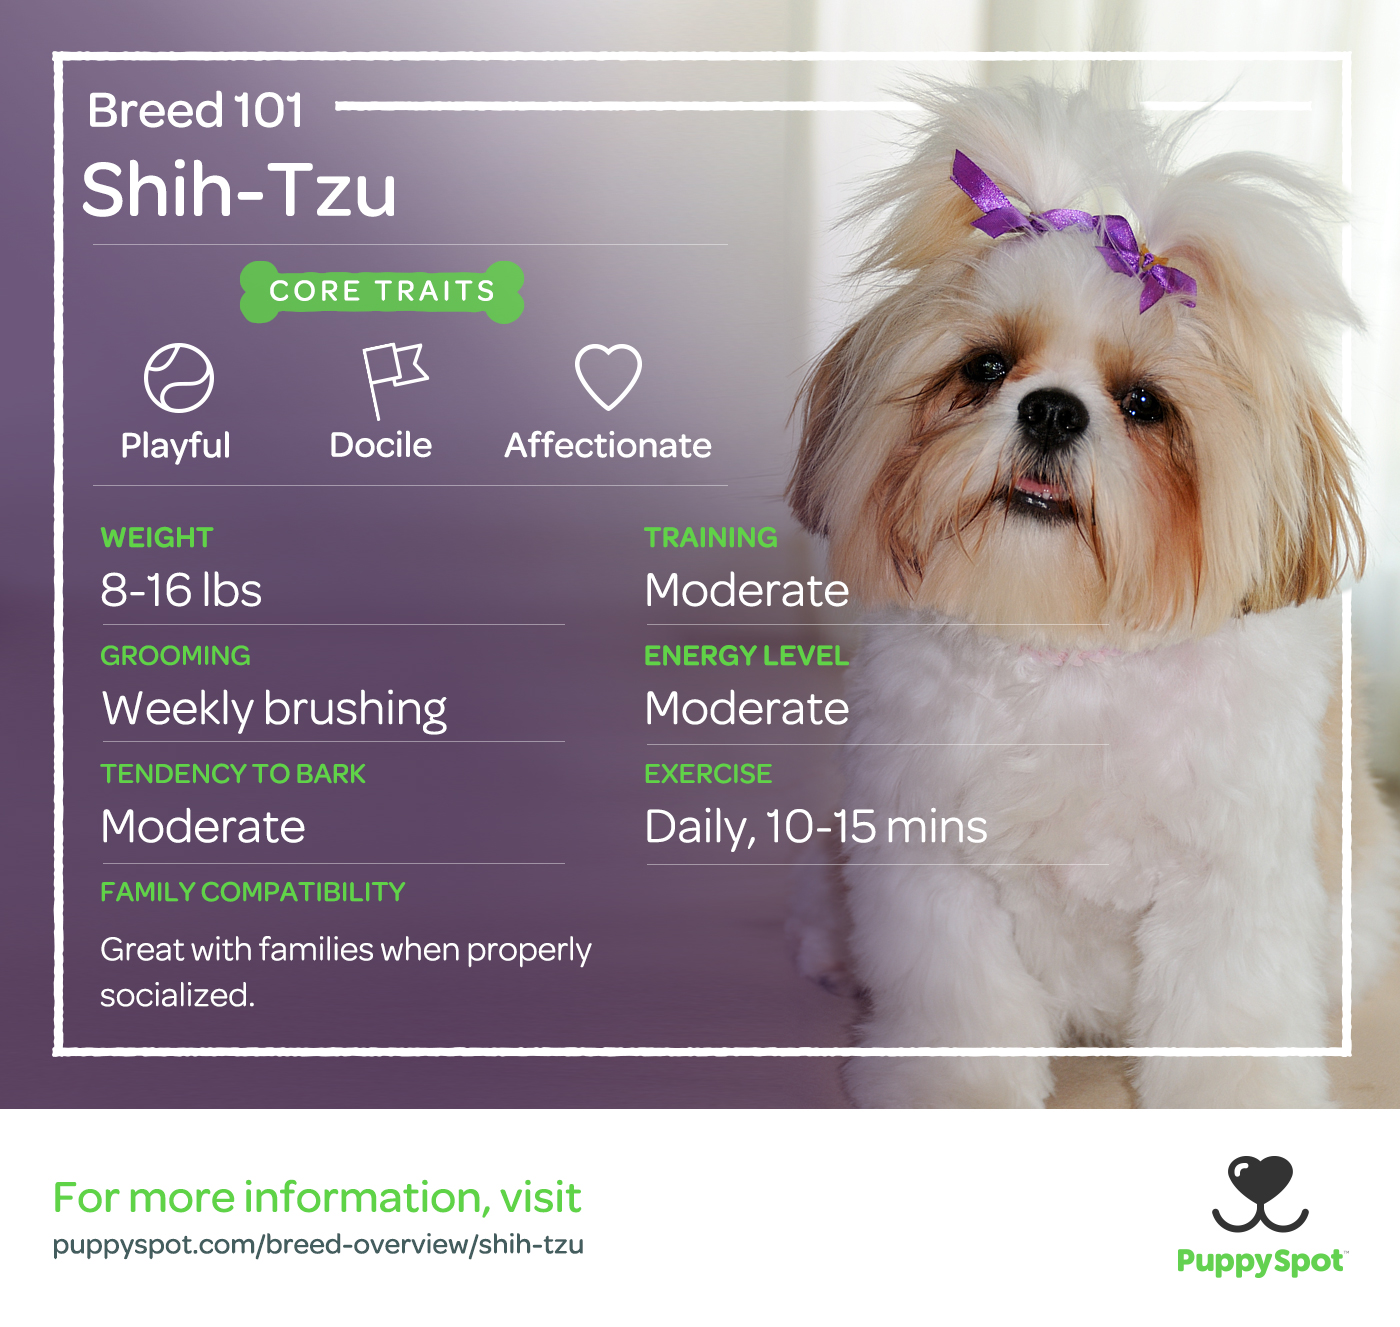 shih-tzu breed 101